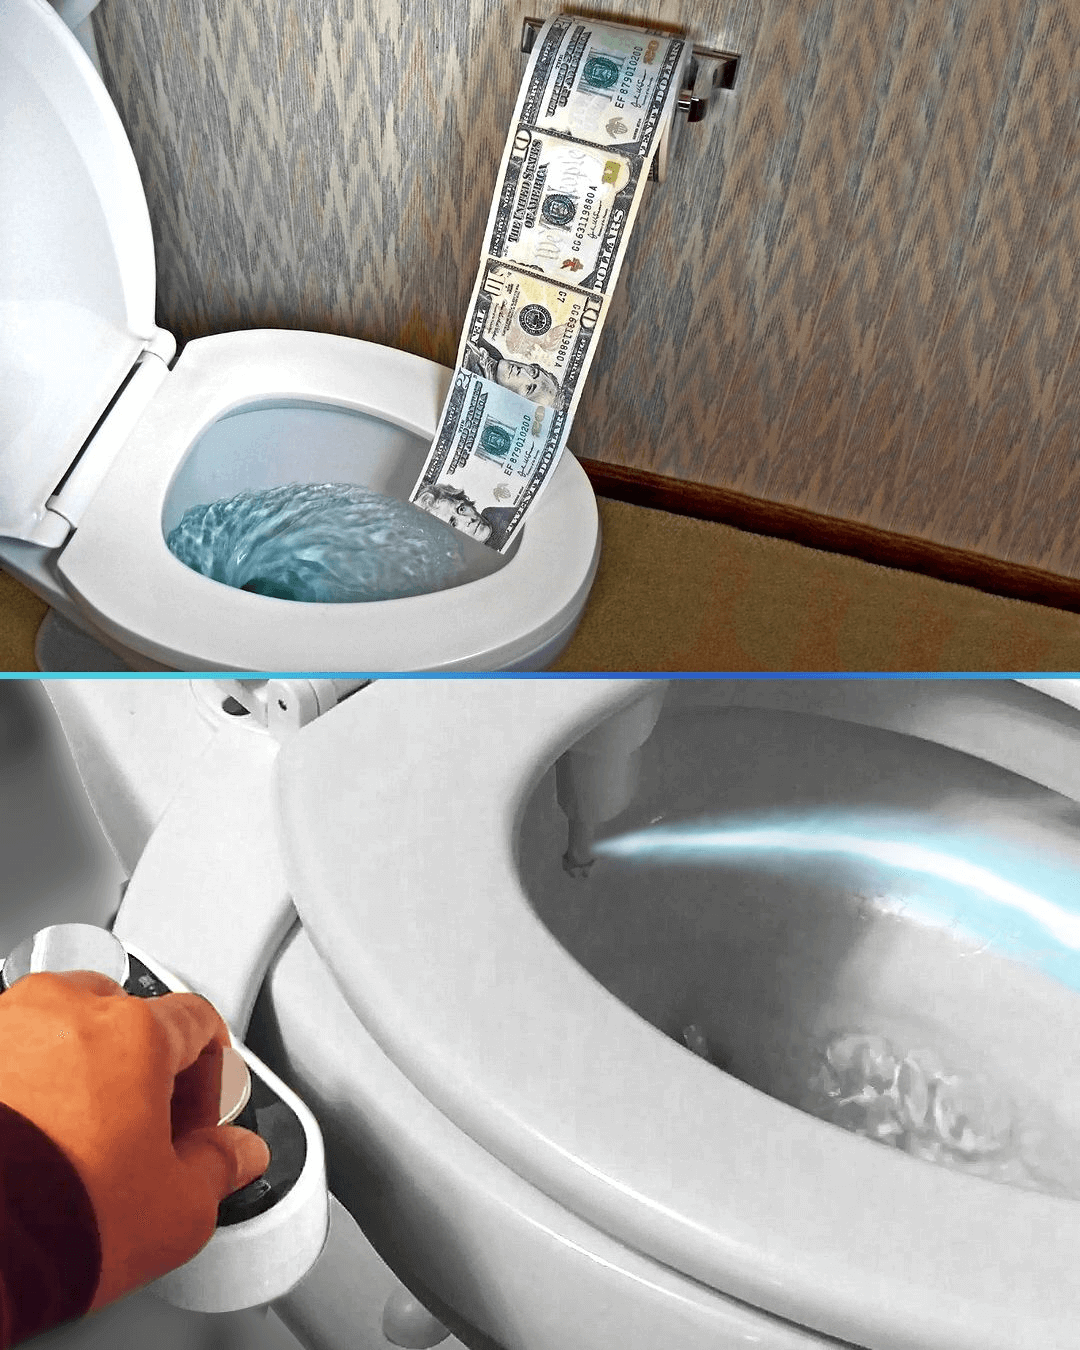 Non electric bidet toilet & seat attachment